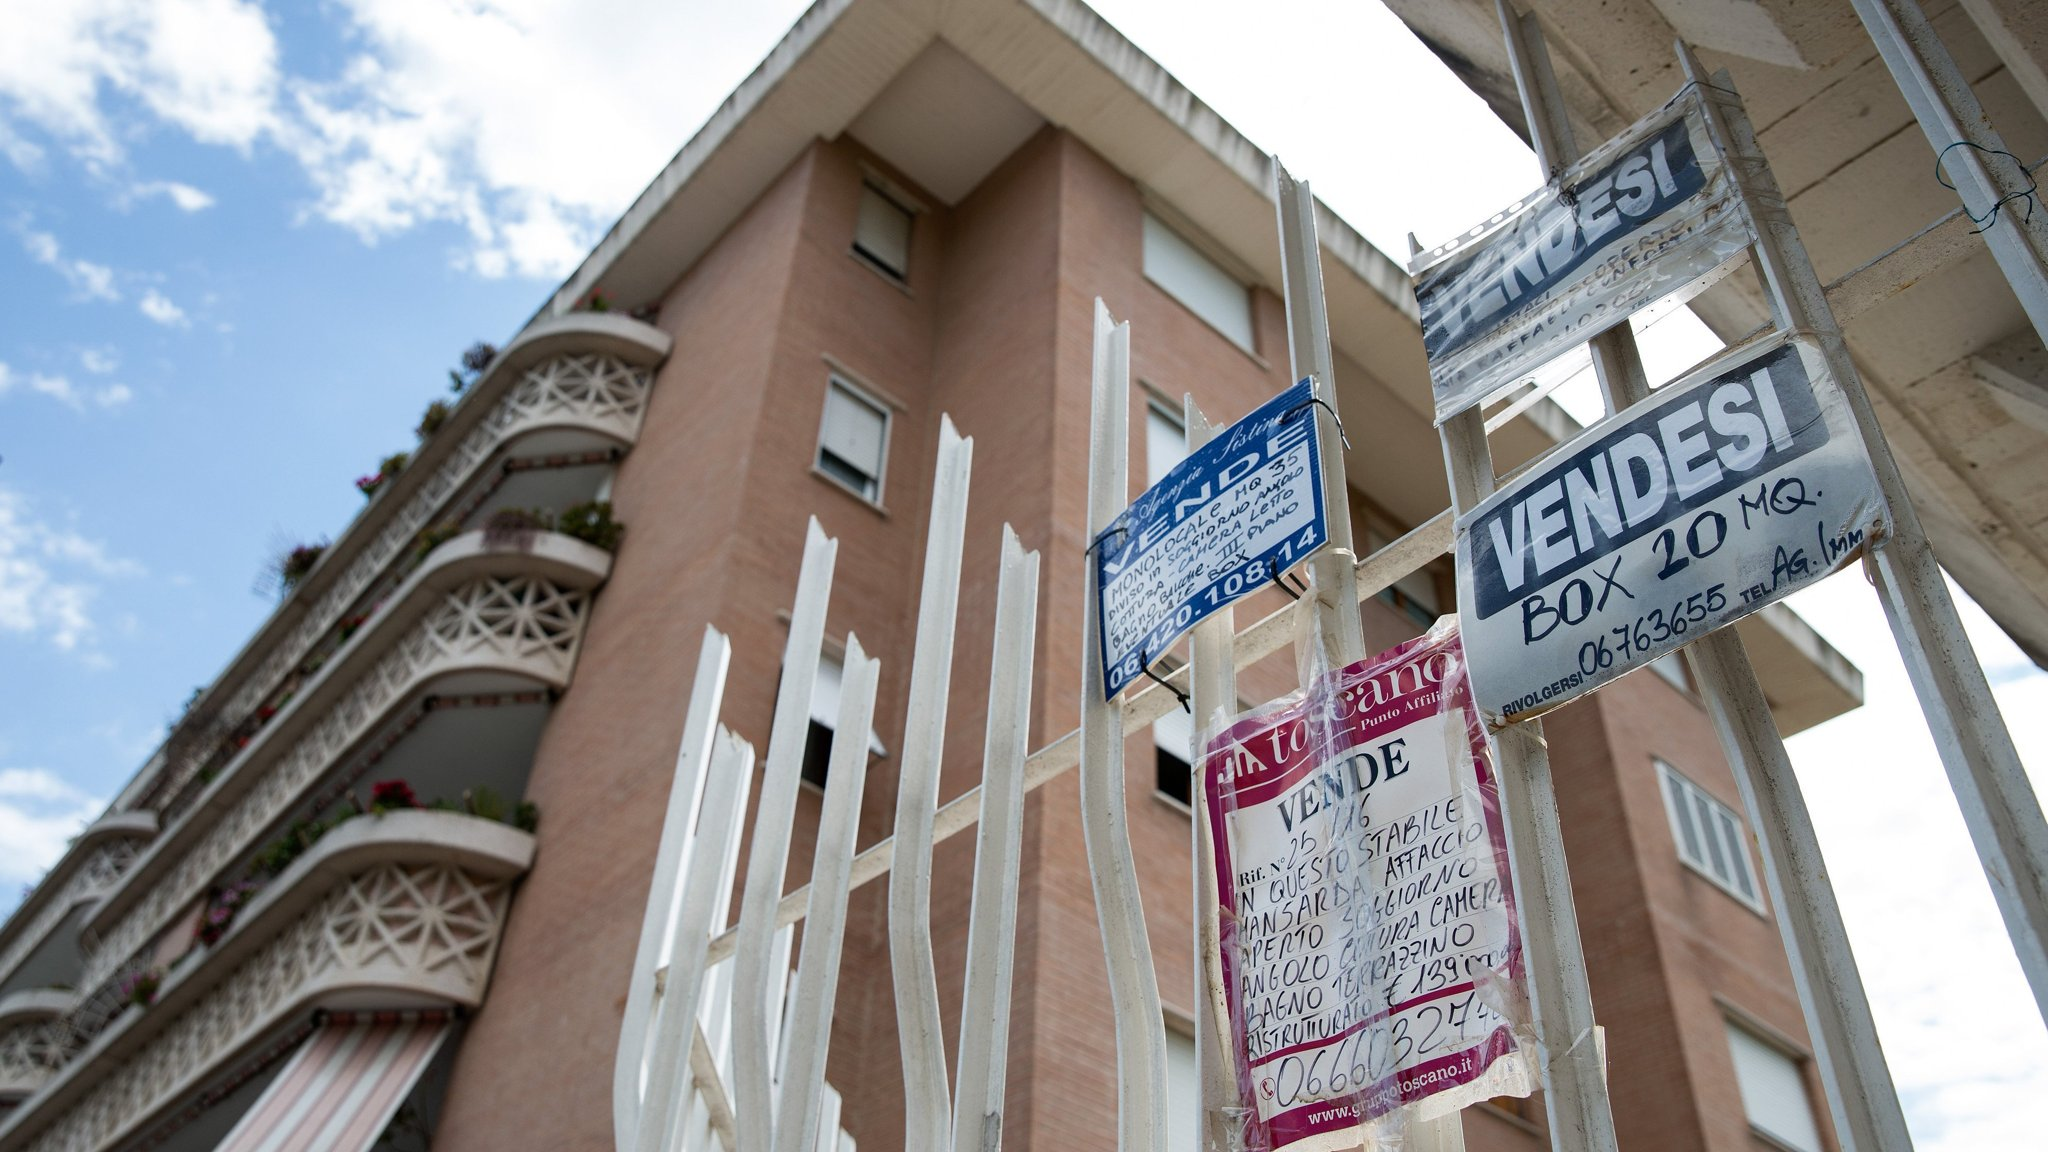 How Italy's property slump weighs on banks and voters